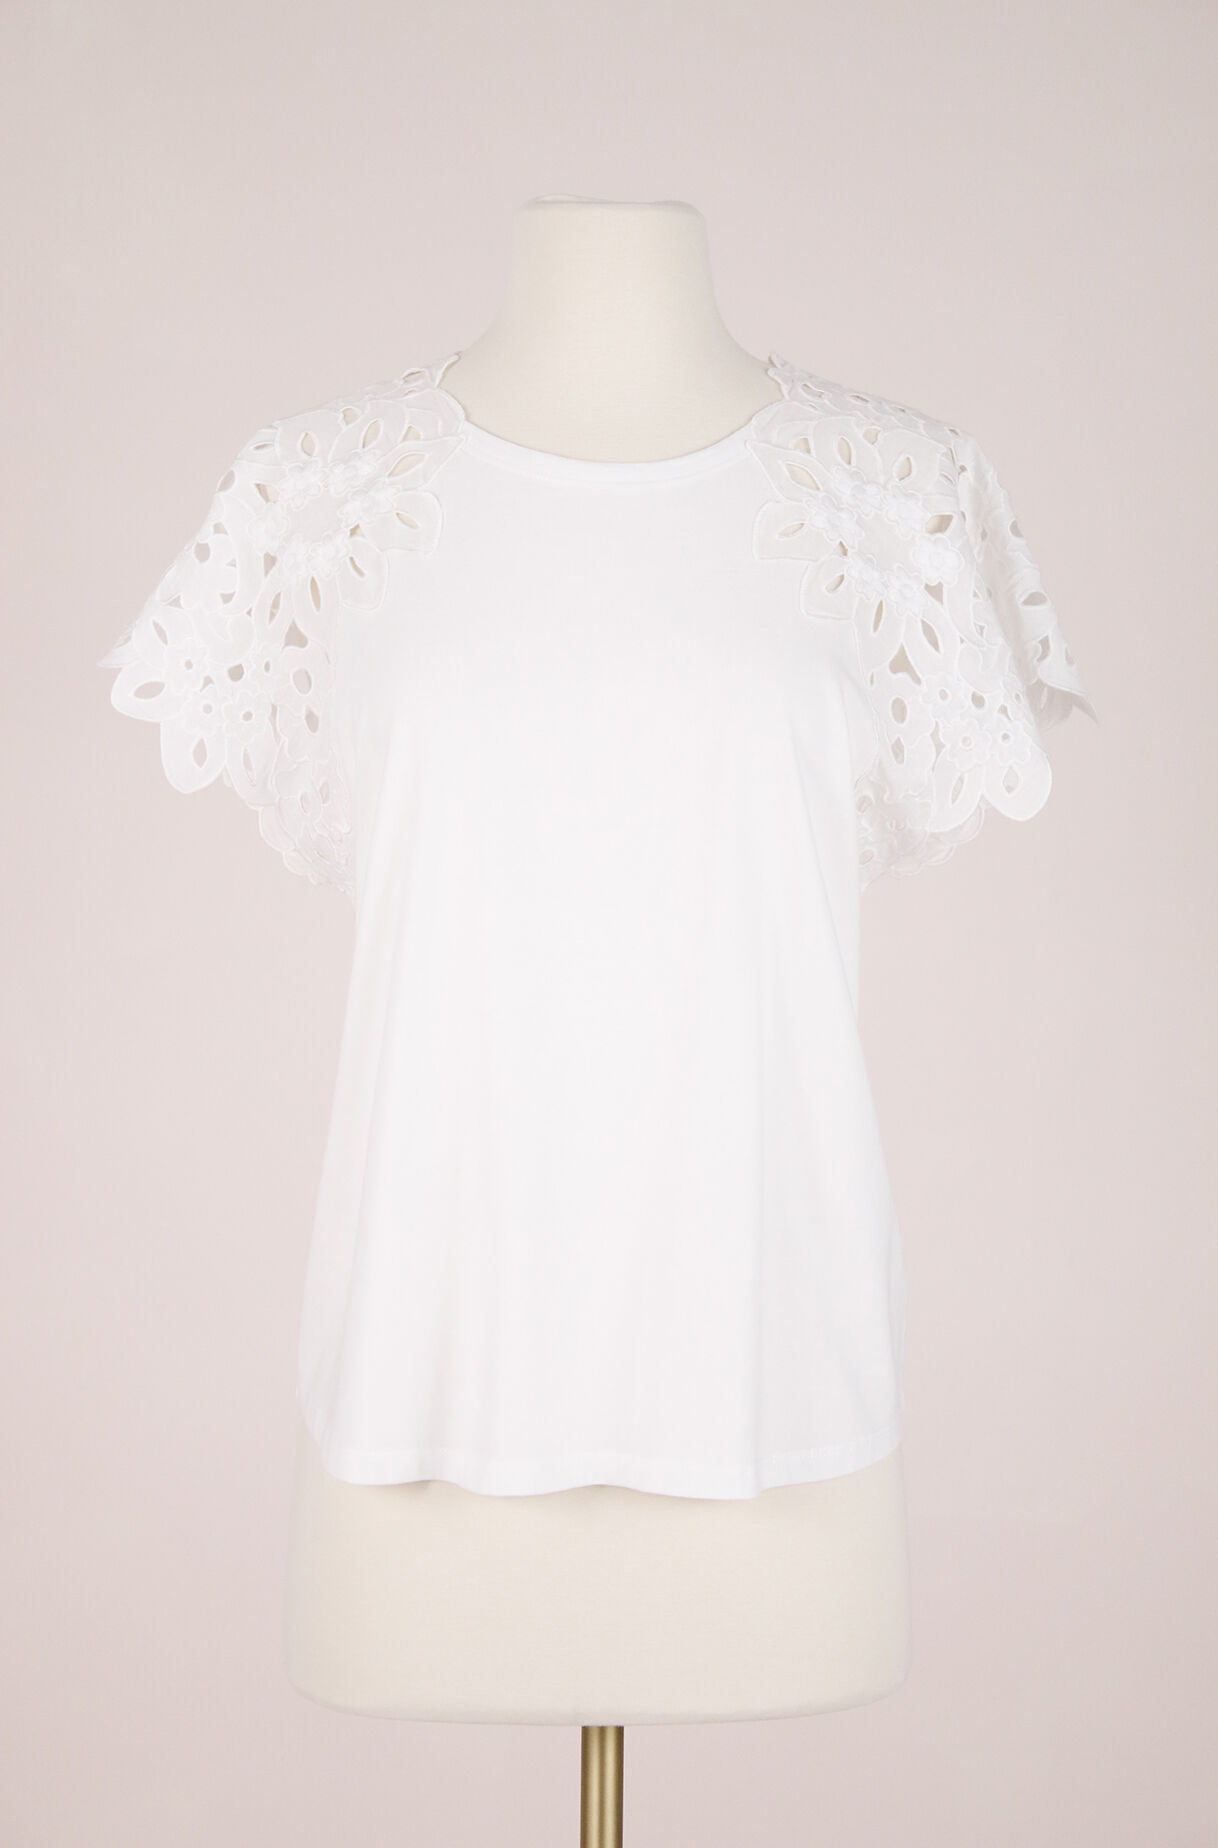 ReCollect La Vie Embroidered Tee